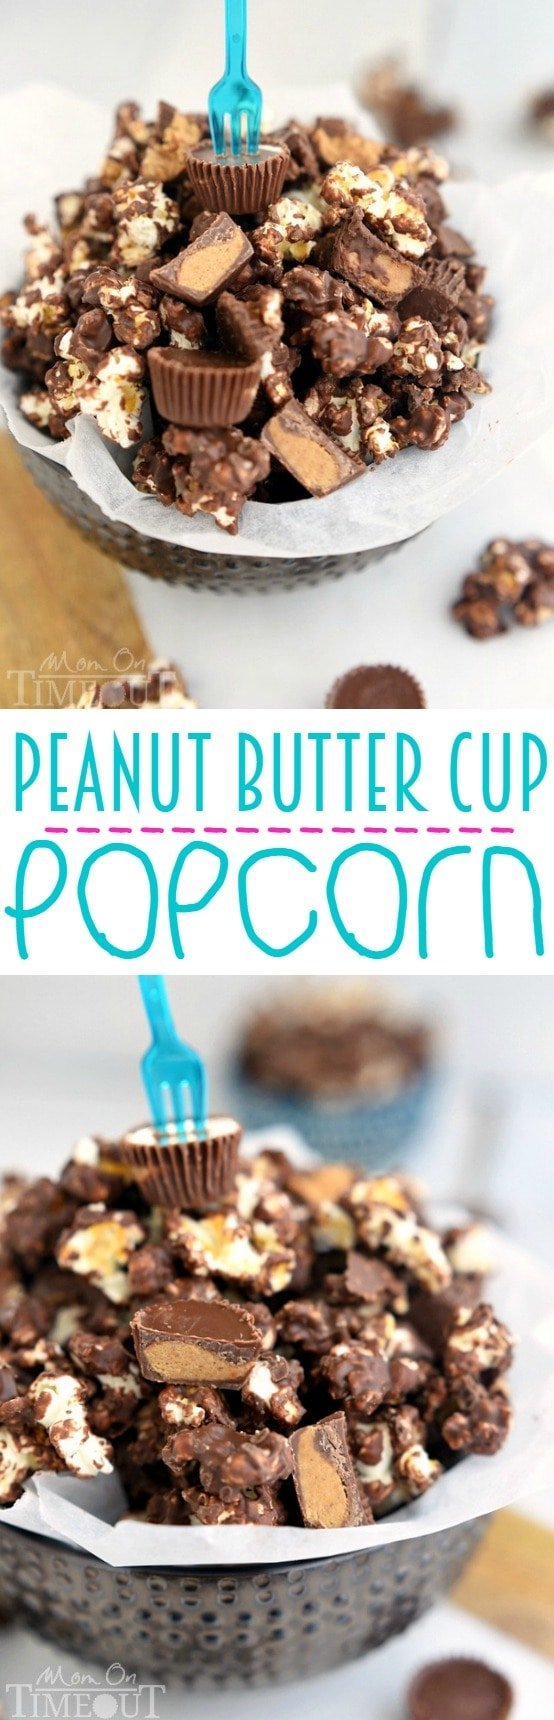 love this Peanut Butter Cup Popcorn with an explosion of peanut butter ...